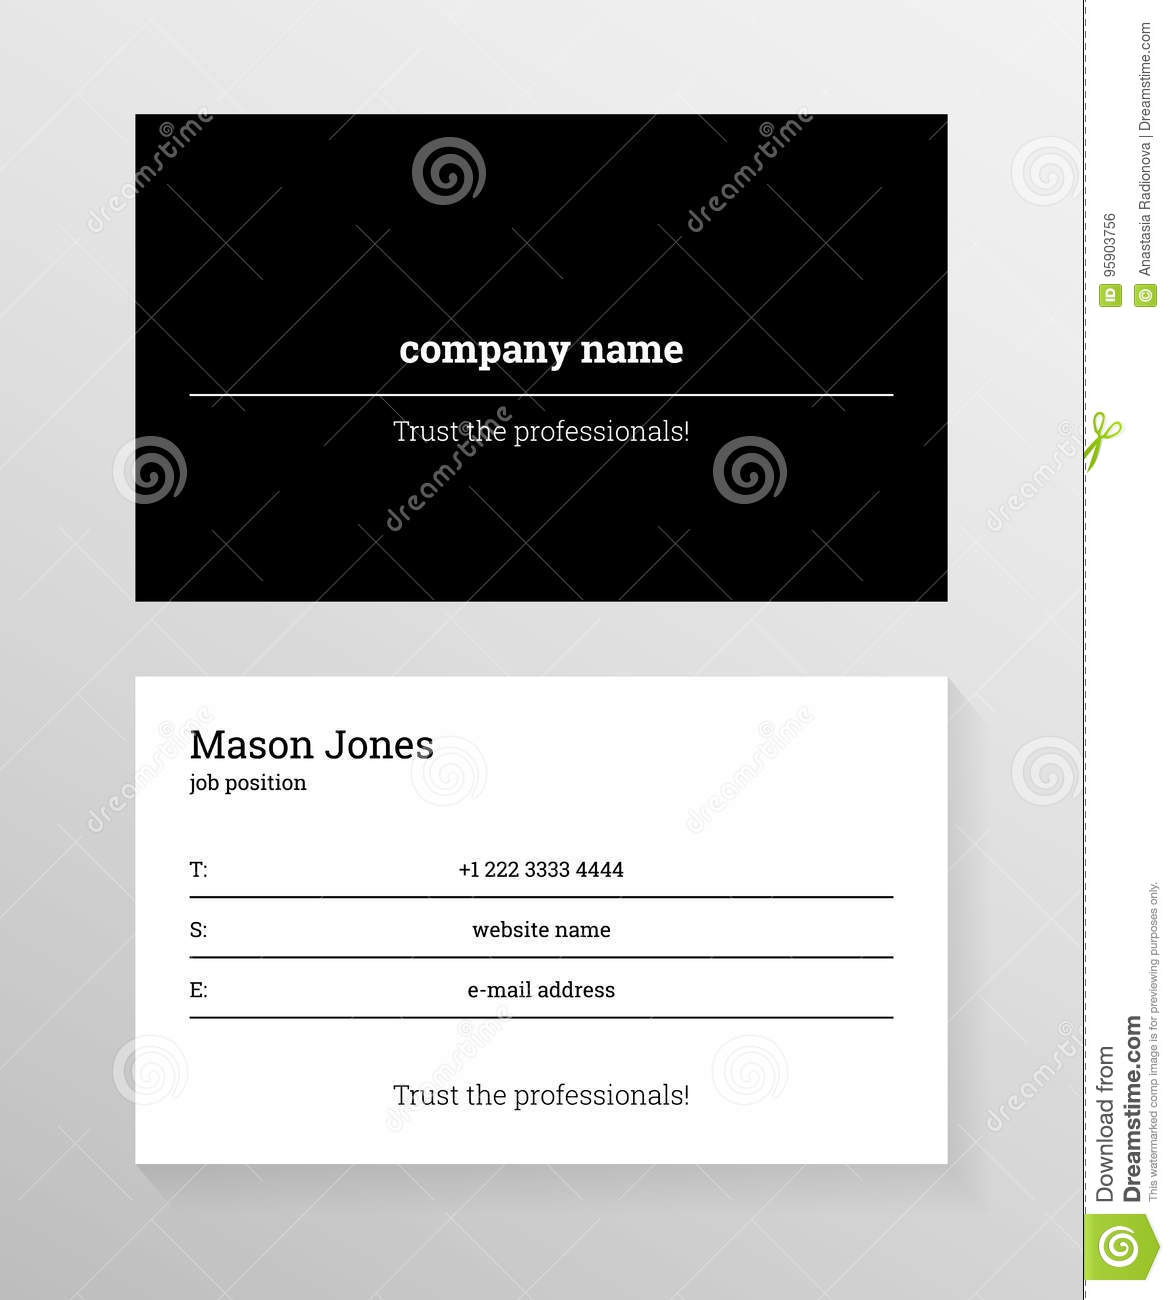 black and white business card template stock vector illustration